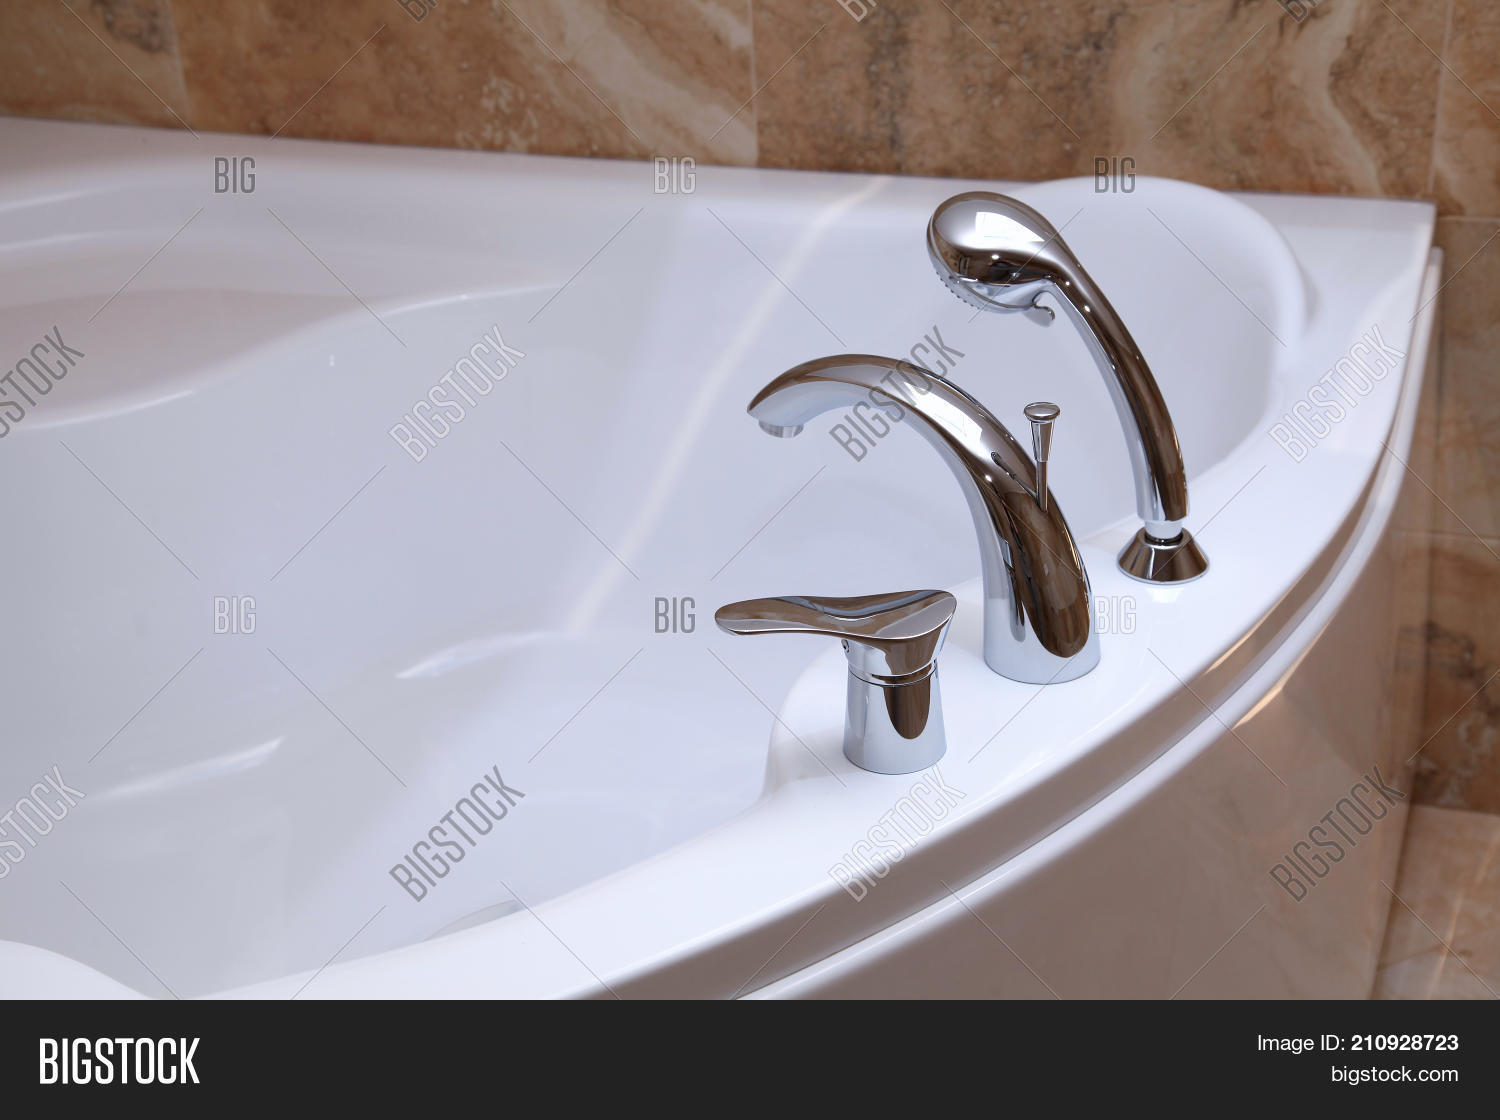 Bathtub Faucet Modern Bathroom. Image & Photo | Bigstock